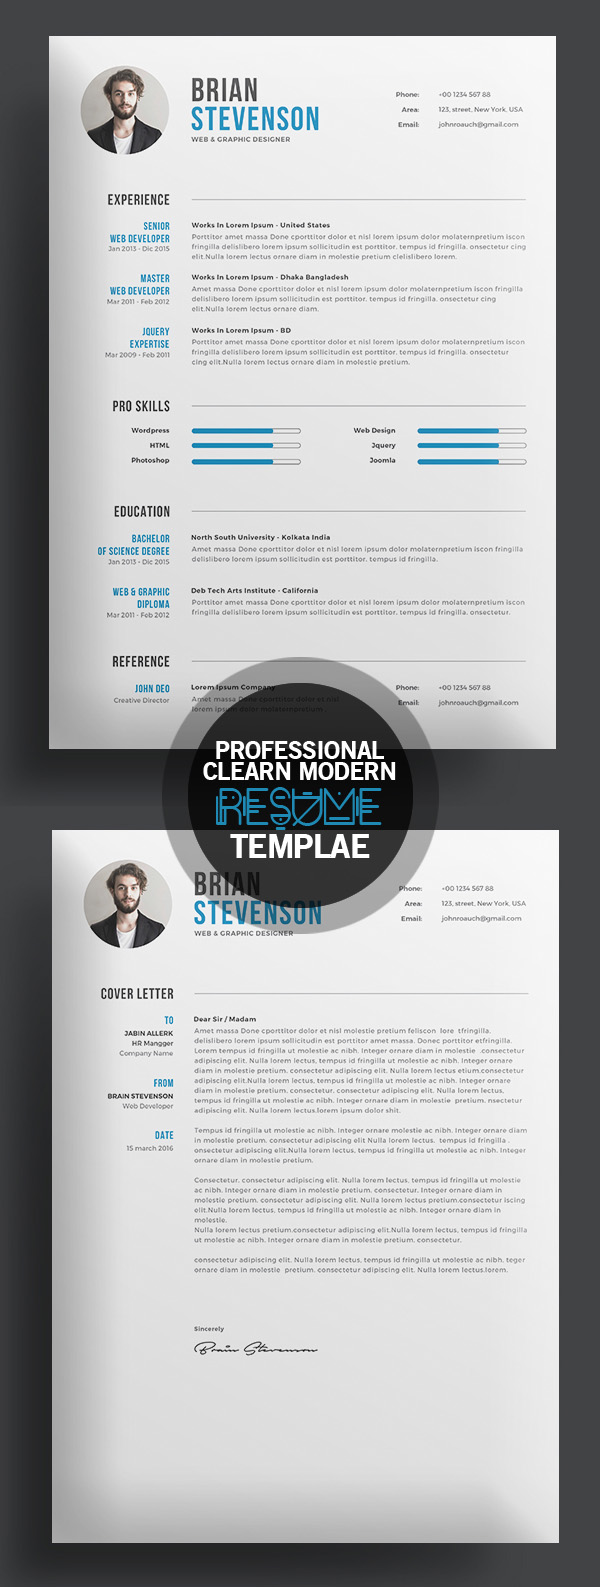 best resume templates for design graphic junction the perfect marketing skills Resume The Perfect Resume 2018